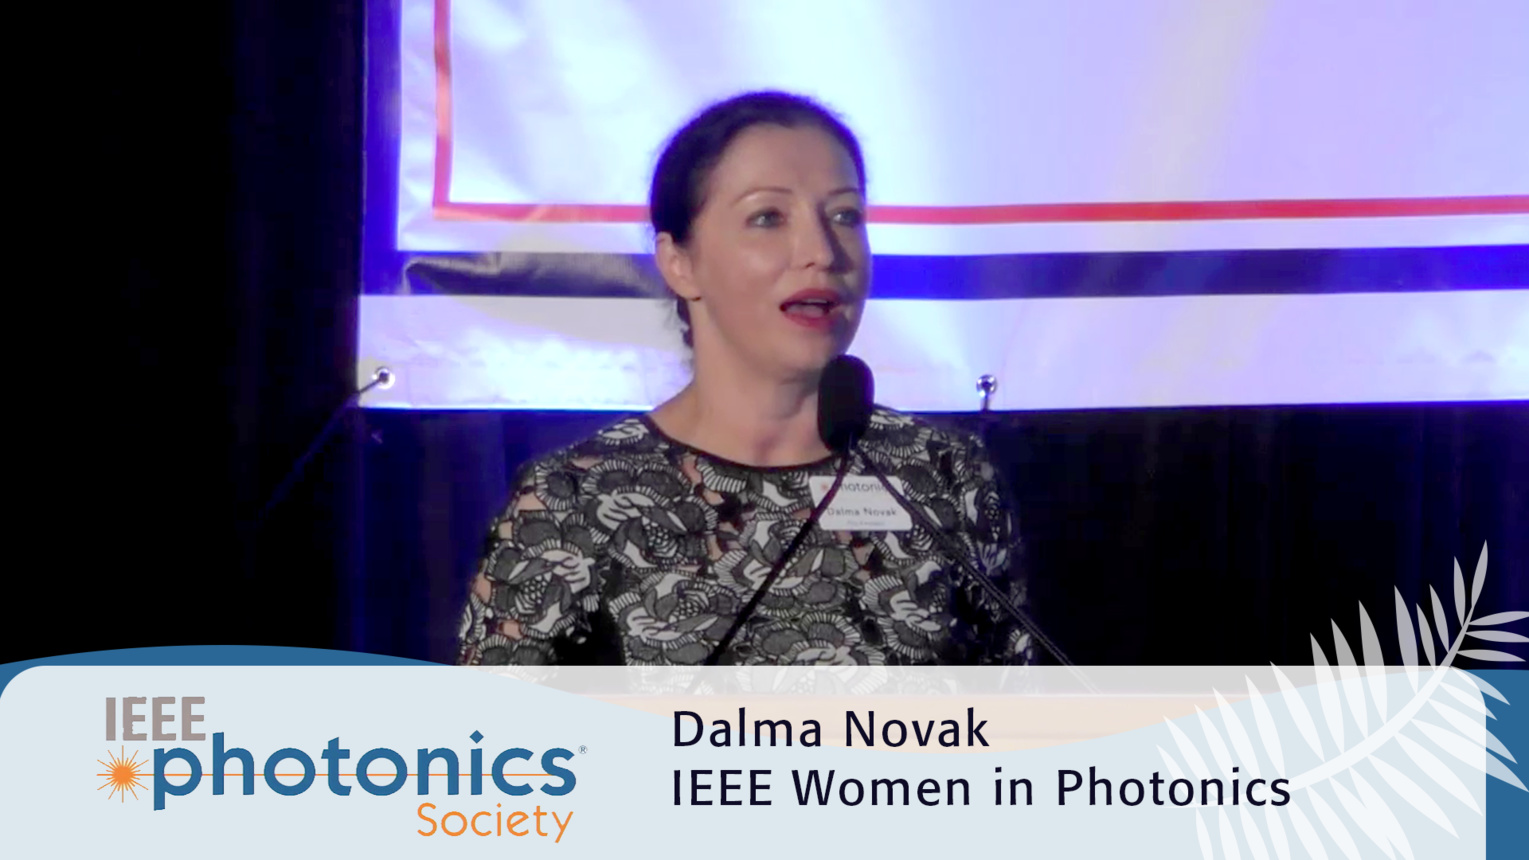 Women in Photonics Workshop Introduction - 2016 IEEE Photonics Conference